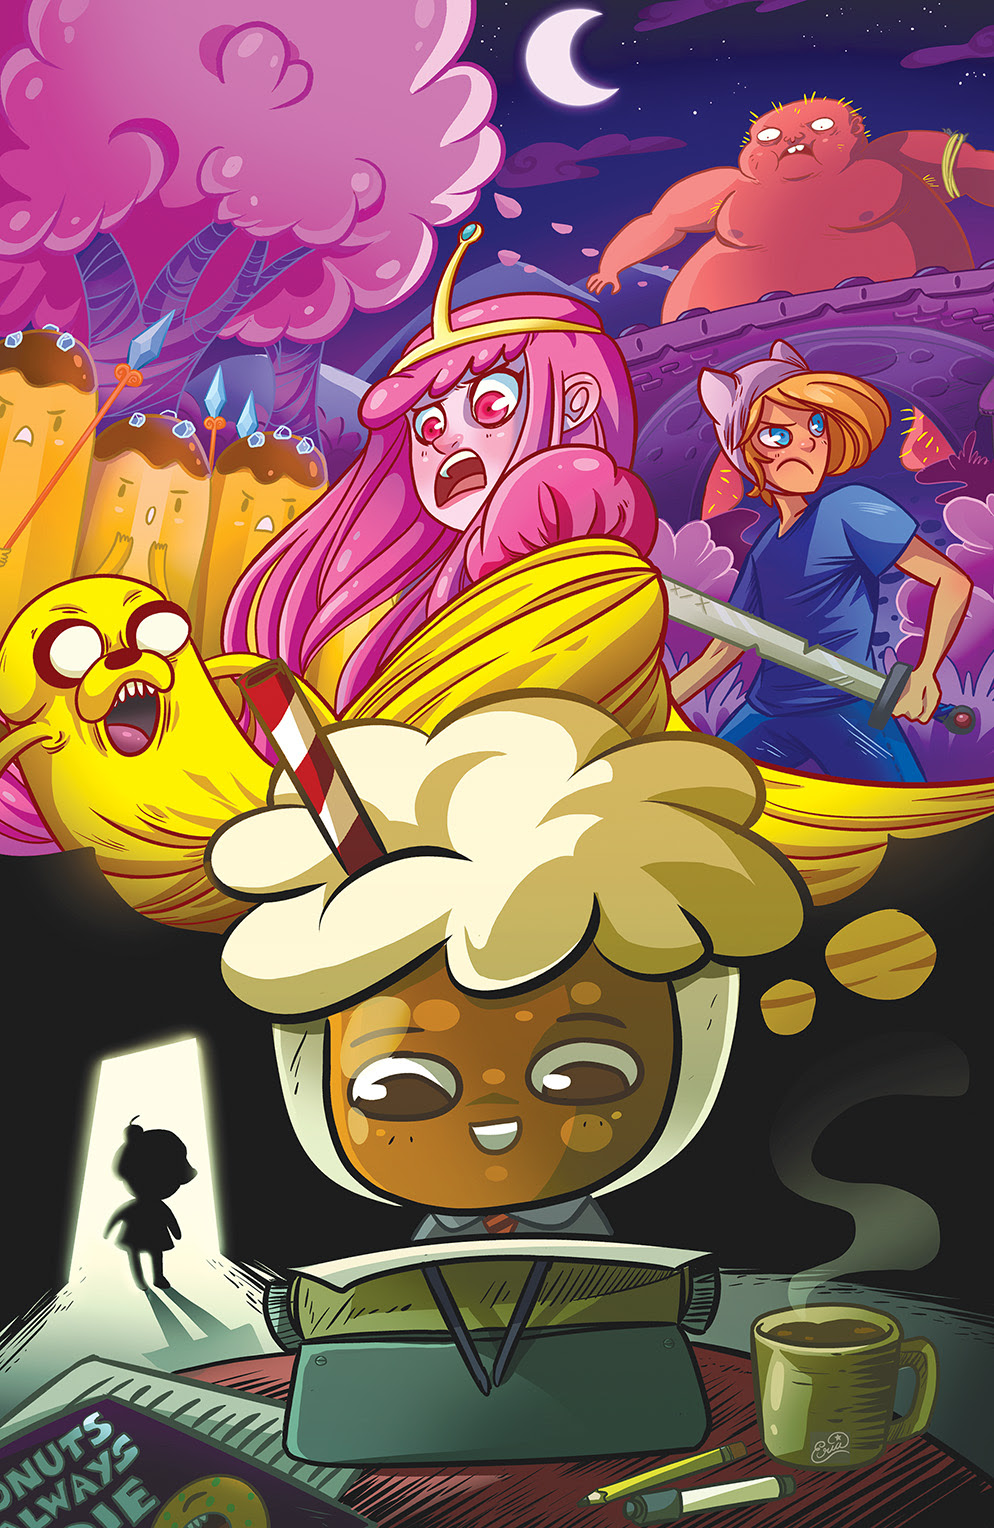 ADVENTURE TIME: BANANA GUARD ACADEMY #2 Cover C by Eva Cabrera